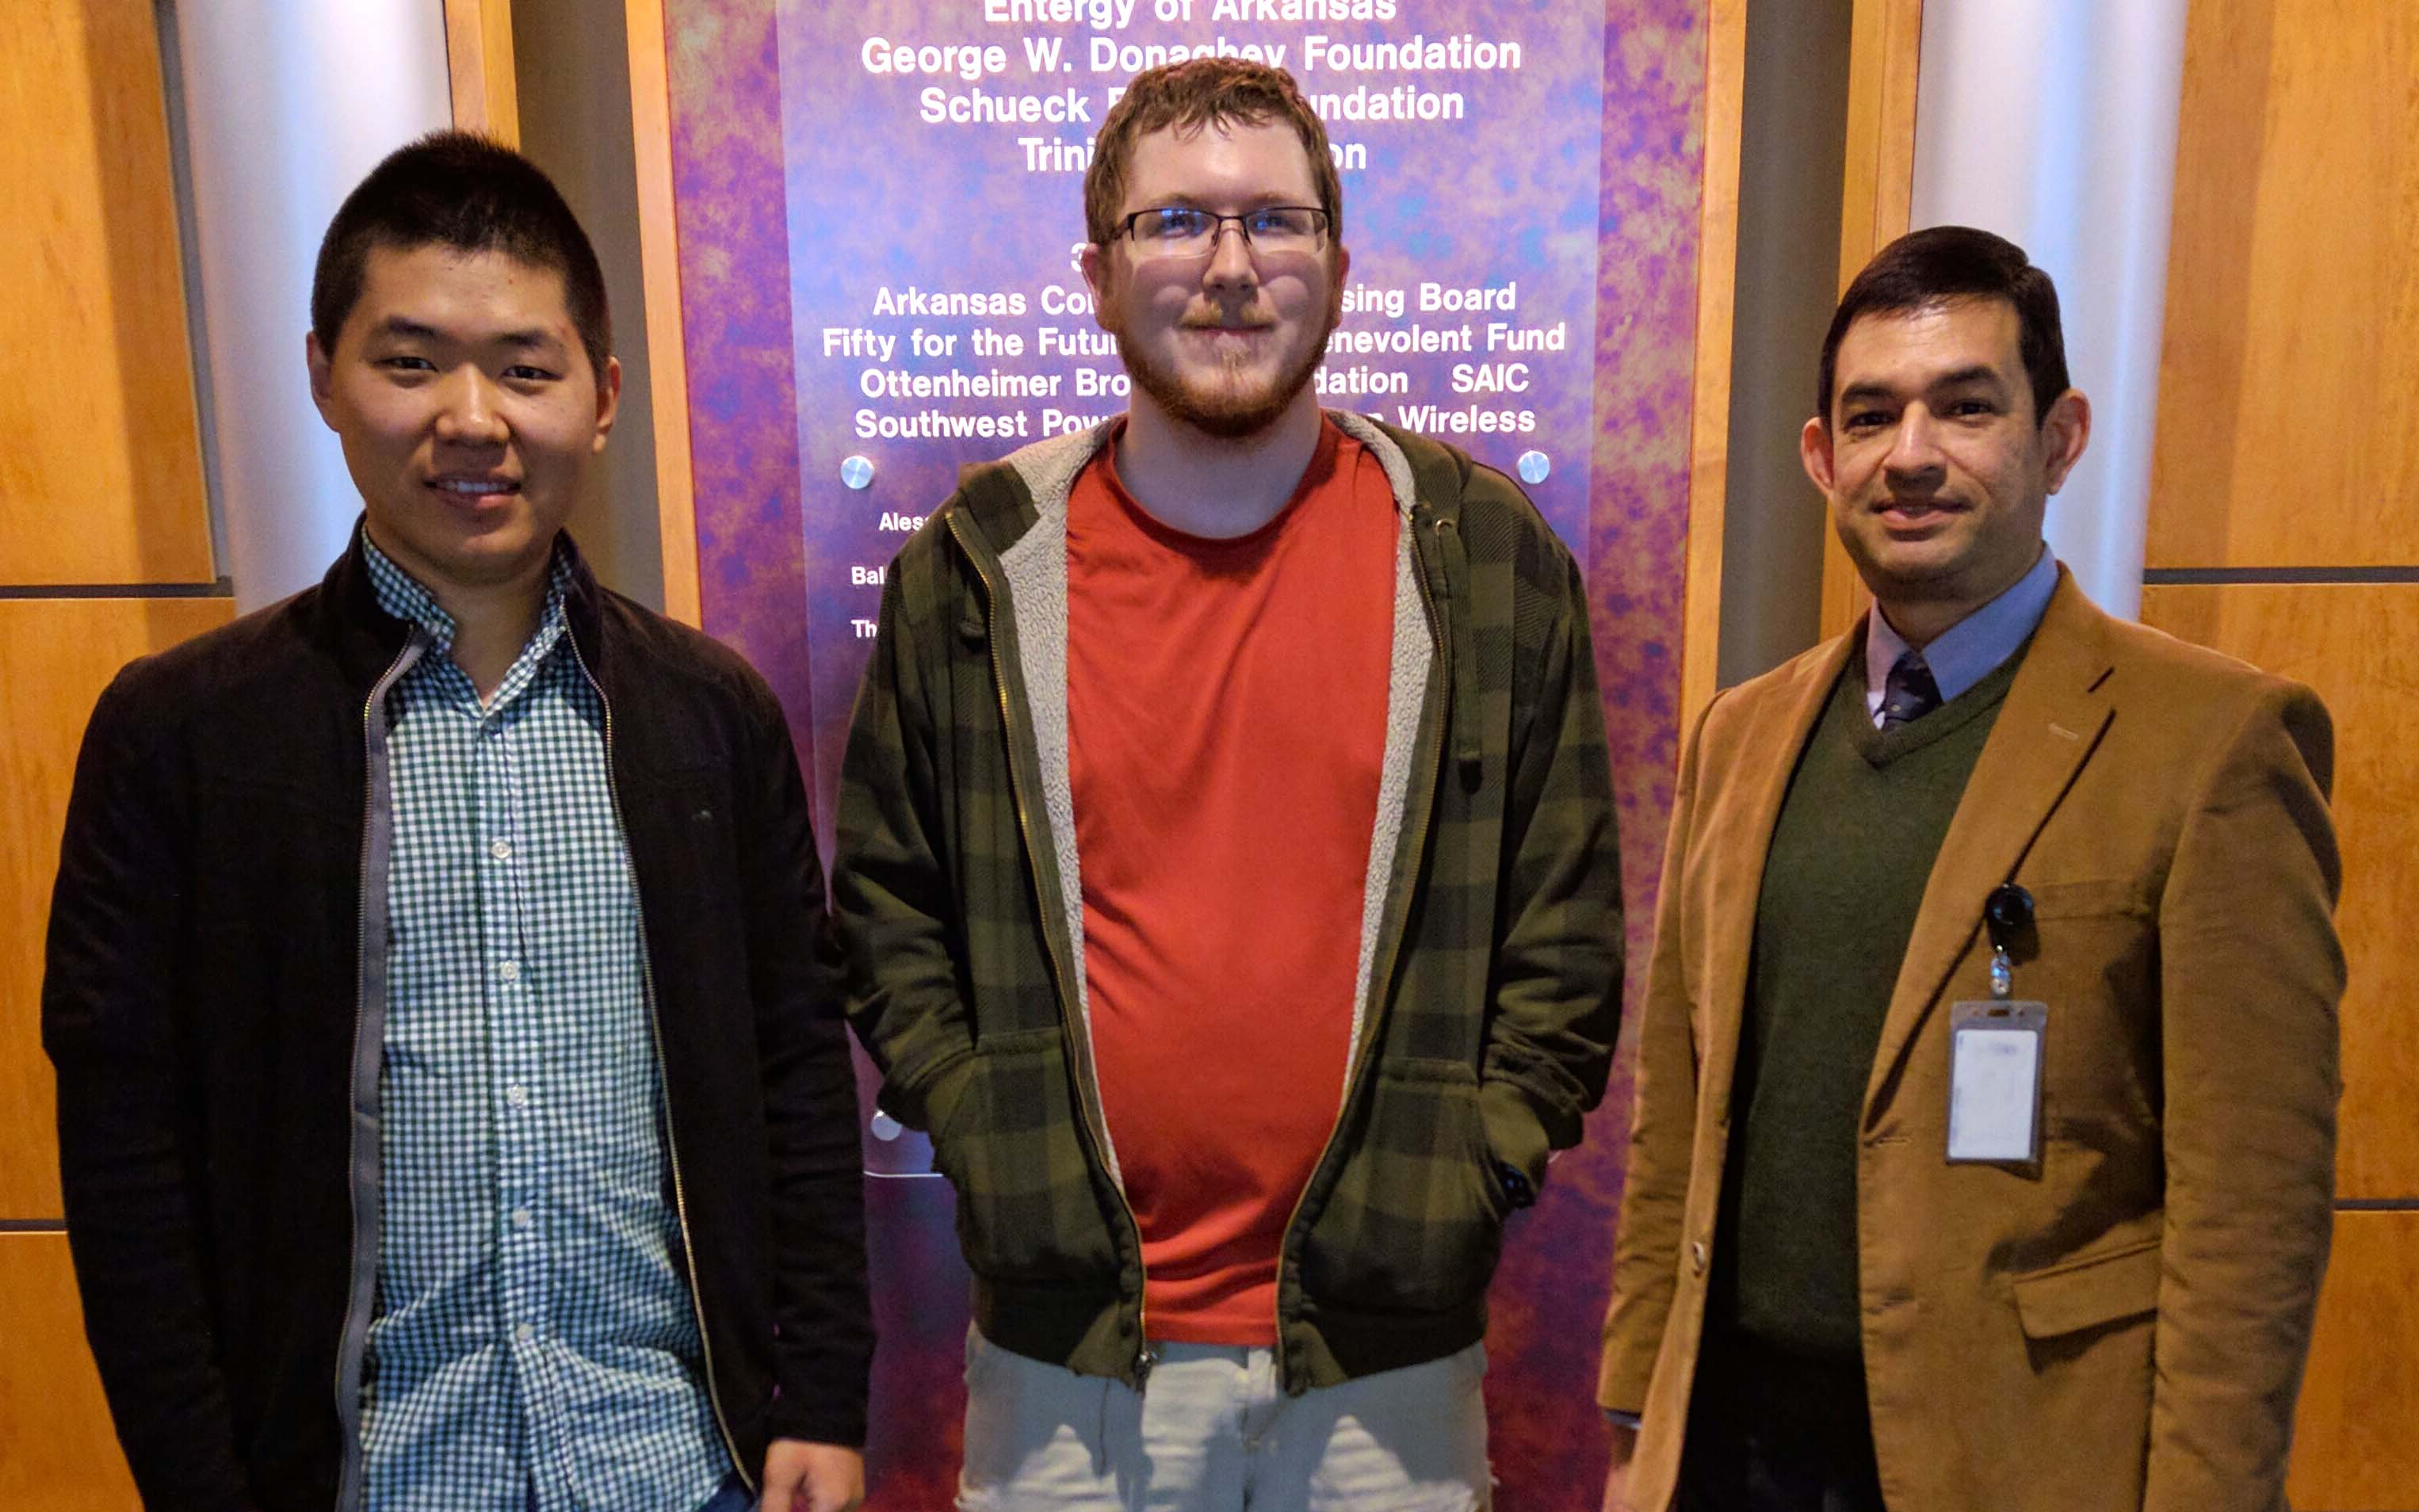 UALR cybersecurity team members (l to r) include Yanyan Li, Connor Young, and Hector Fernandez.